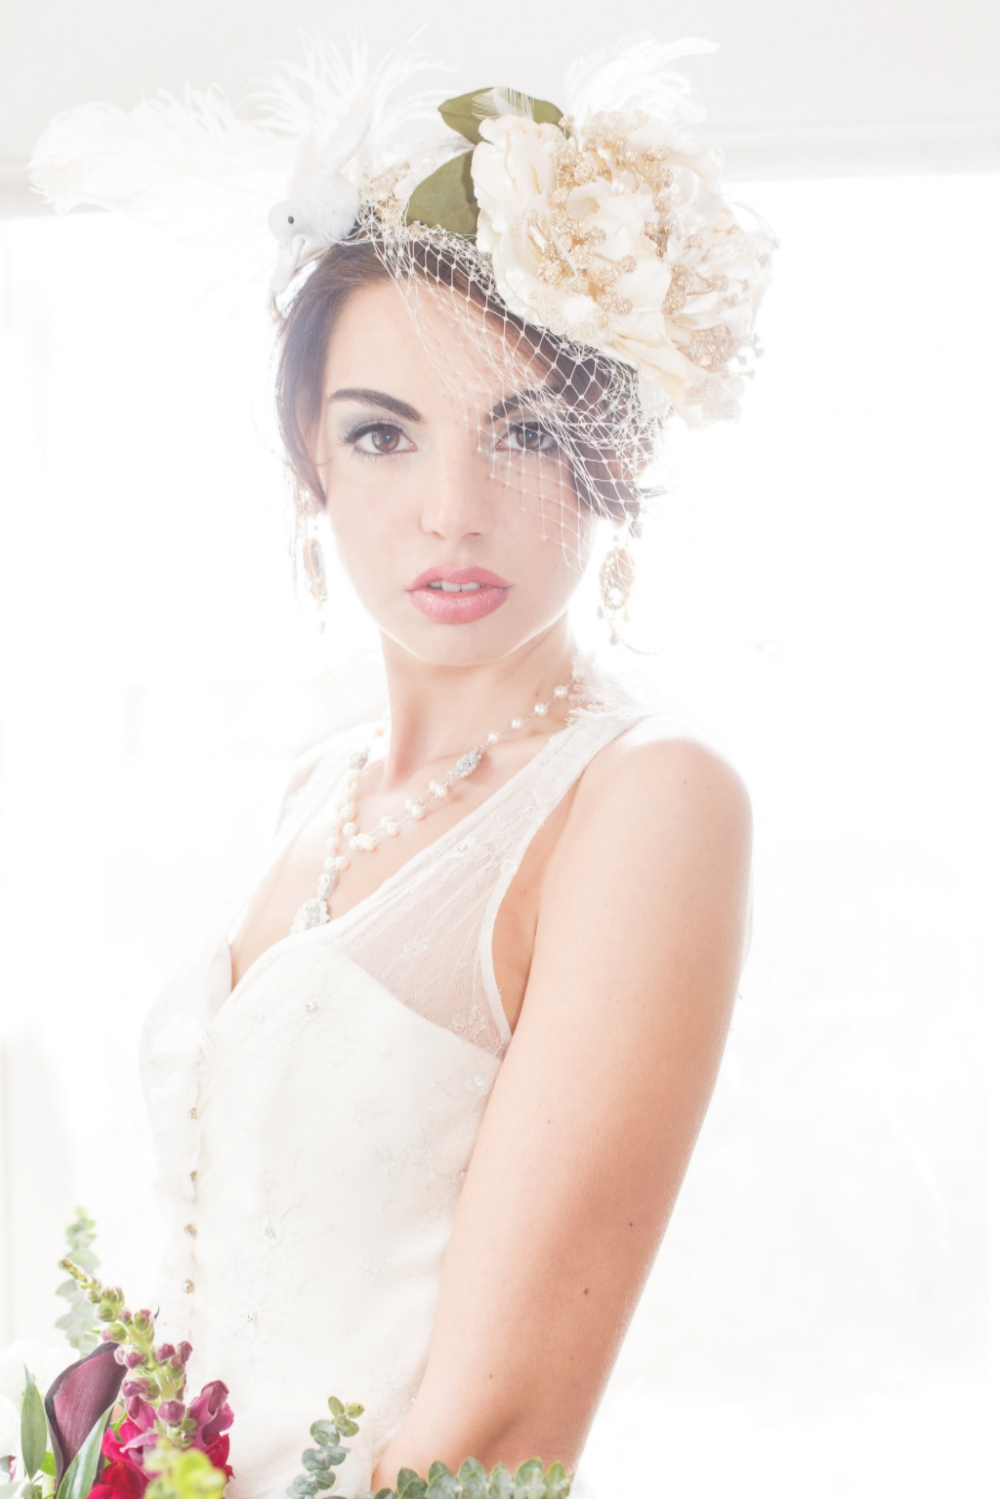 Edera Jewelry Blog | Vintage-Inspired Pearl Wedding Jewelry